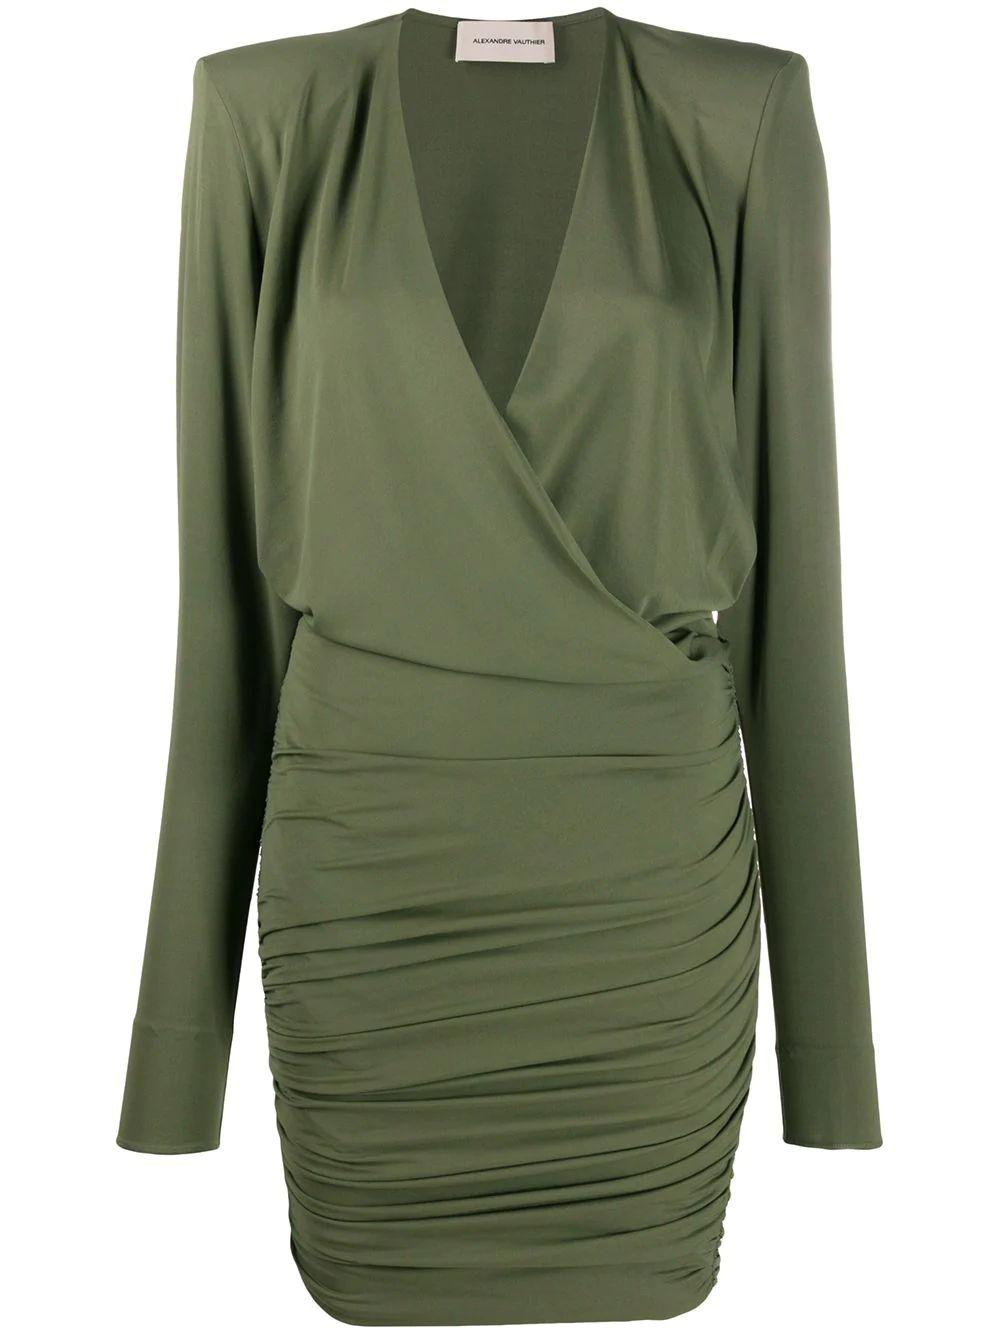 Wrap Top Jersey Dress Item # 203DR1334